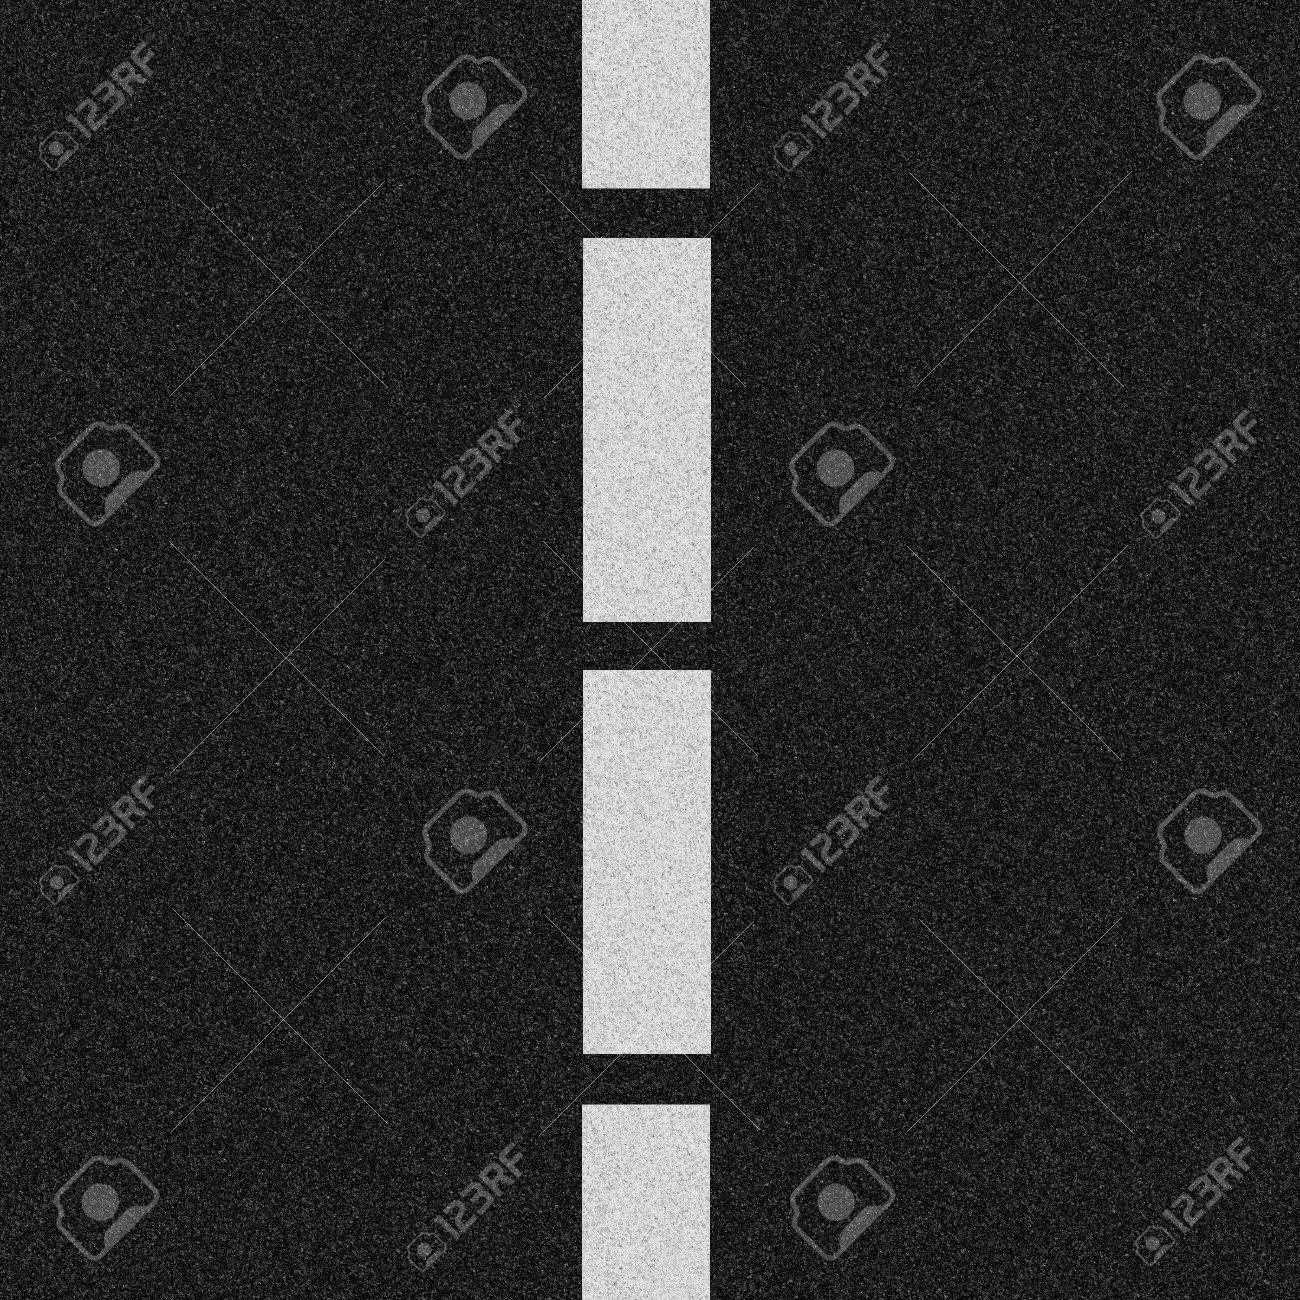 Asphalt With Lines will tile with Asphalt Without Lines Image. Stock Photo - 3332356